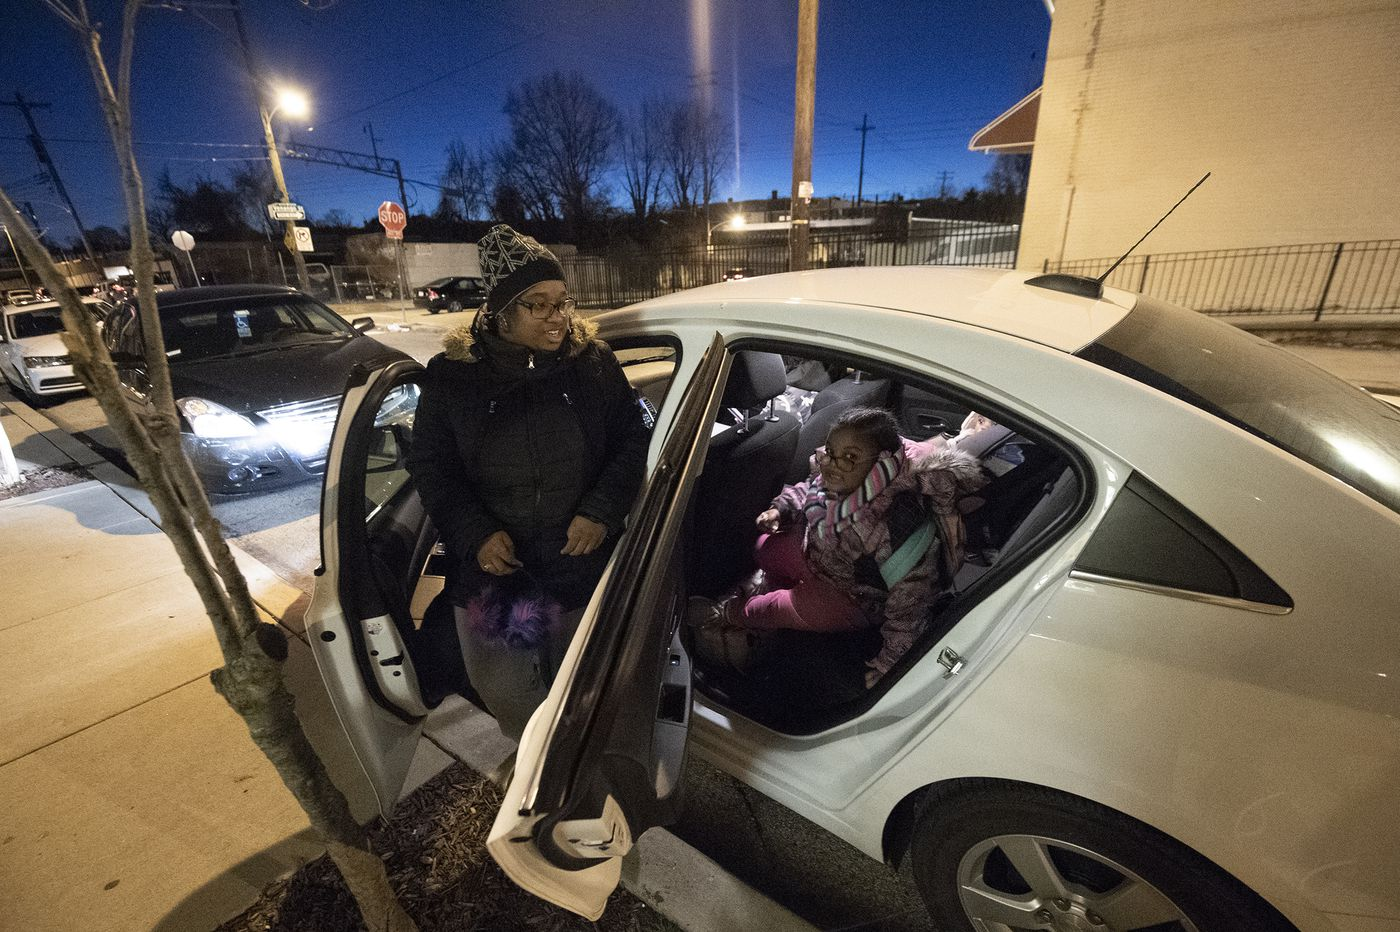 For workers in Philly's poor neighborhoods, car ownership often a necessity and a privilege